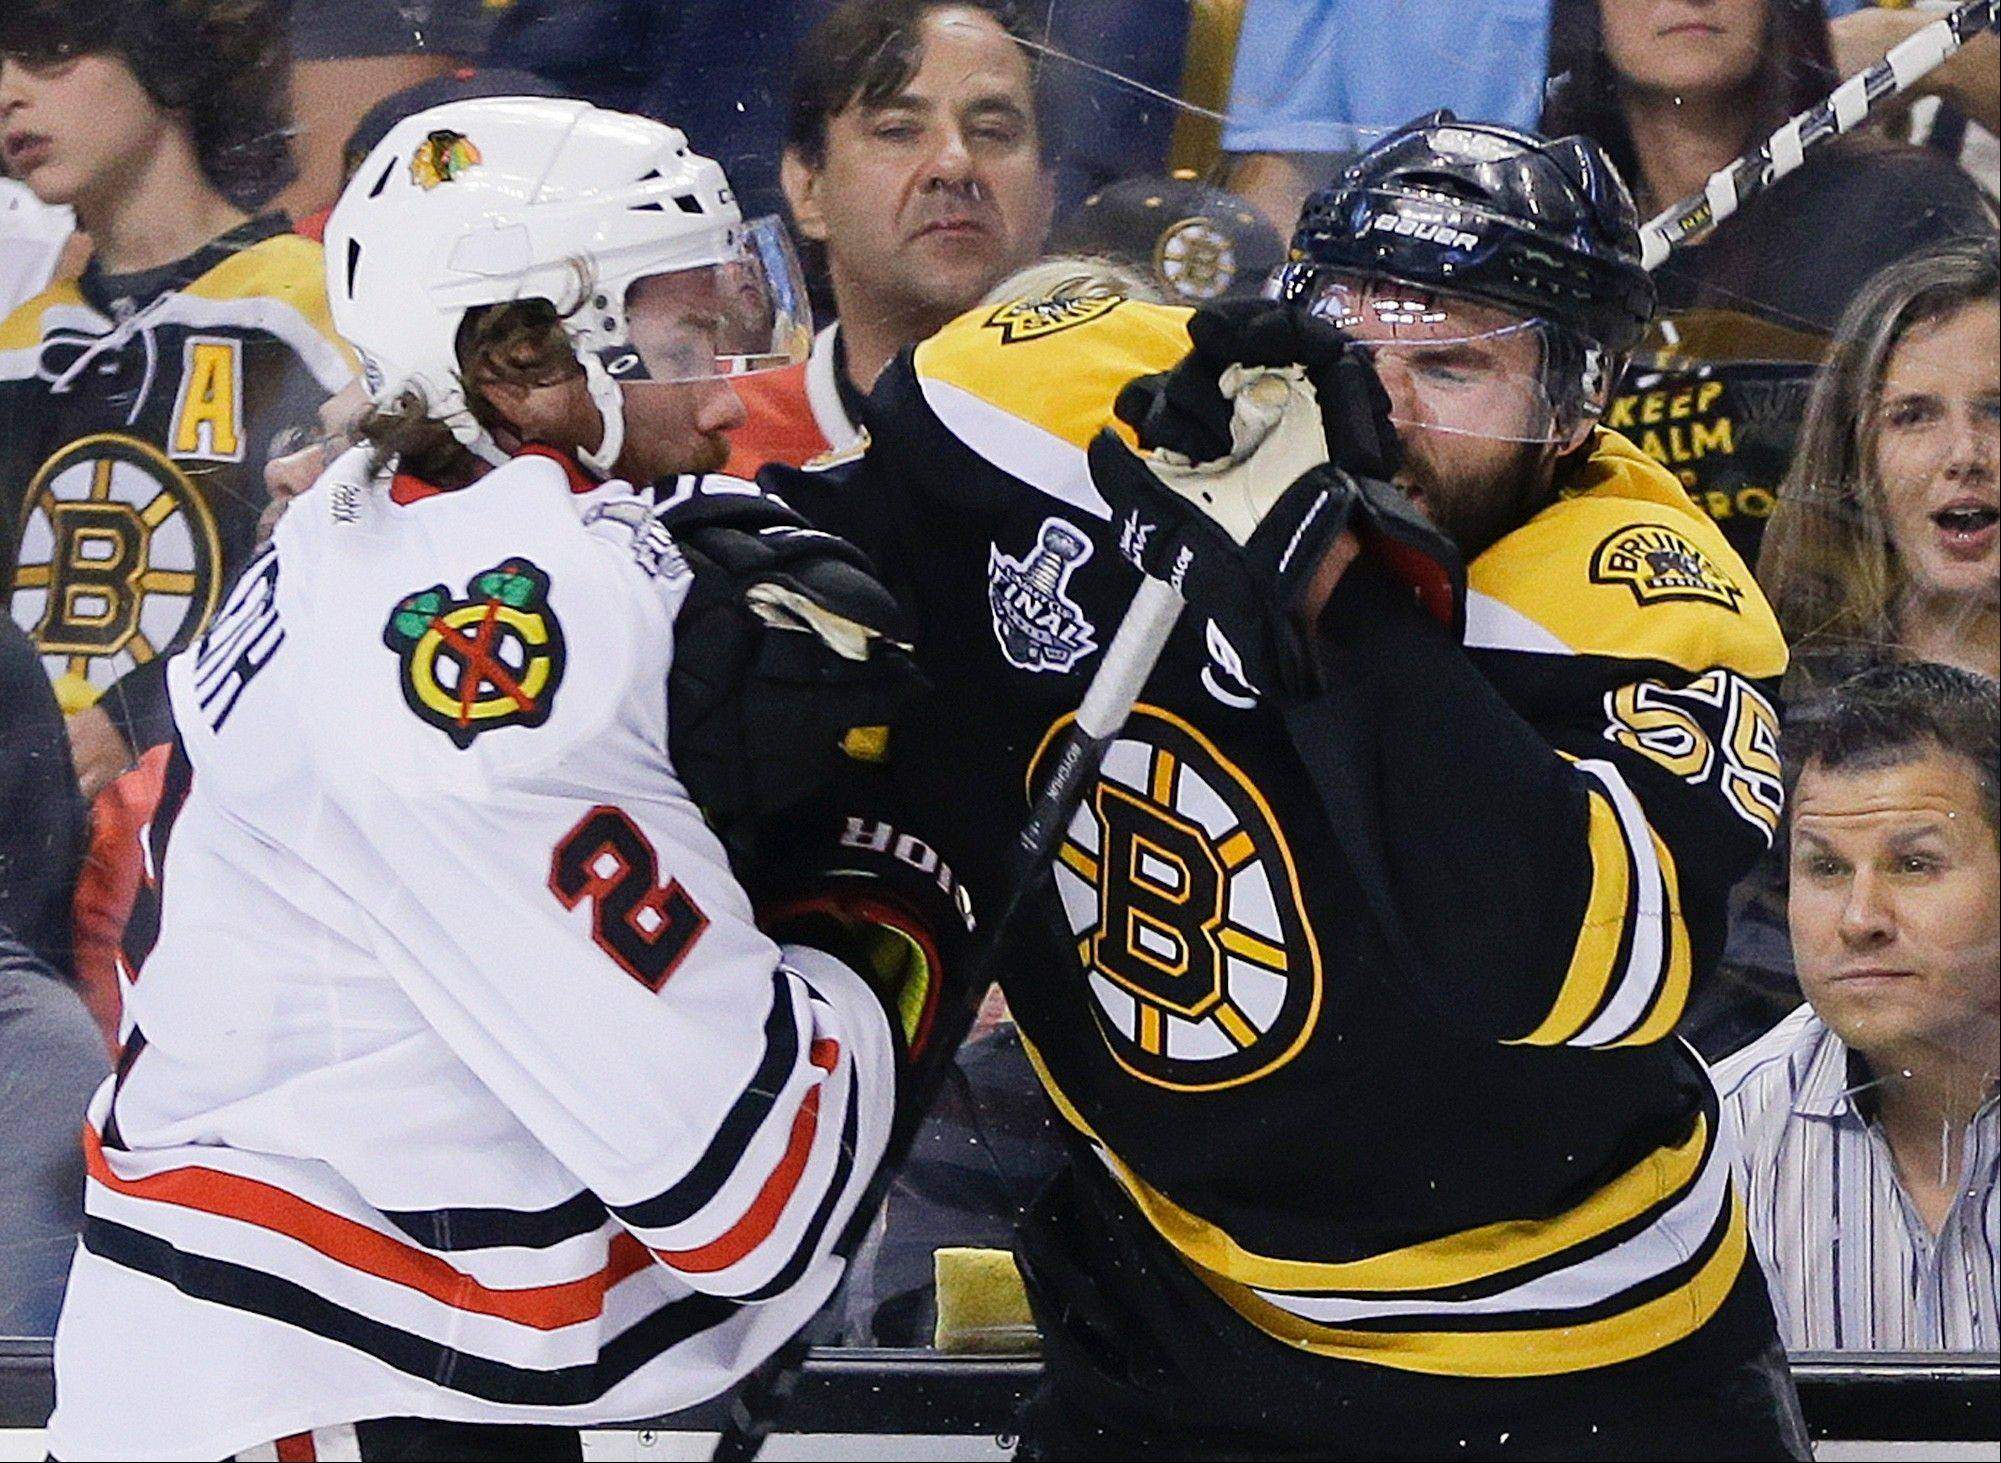 Chicago Blackhawks defenseman Duncan Keith (2) checks Boston Bruins defenseman Johnny Boychuk (55) during the first period in Game 6 of the NHL Stanley Cup Finals Monday in Boston.